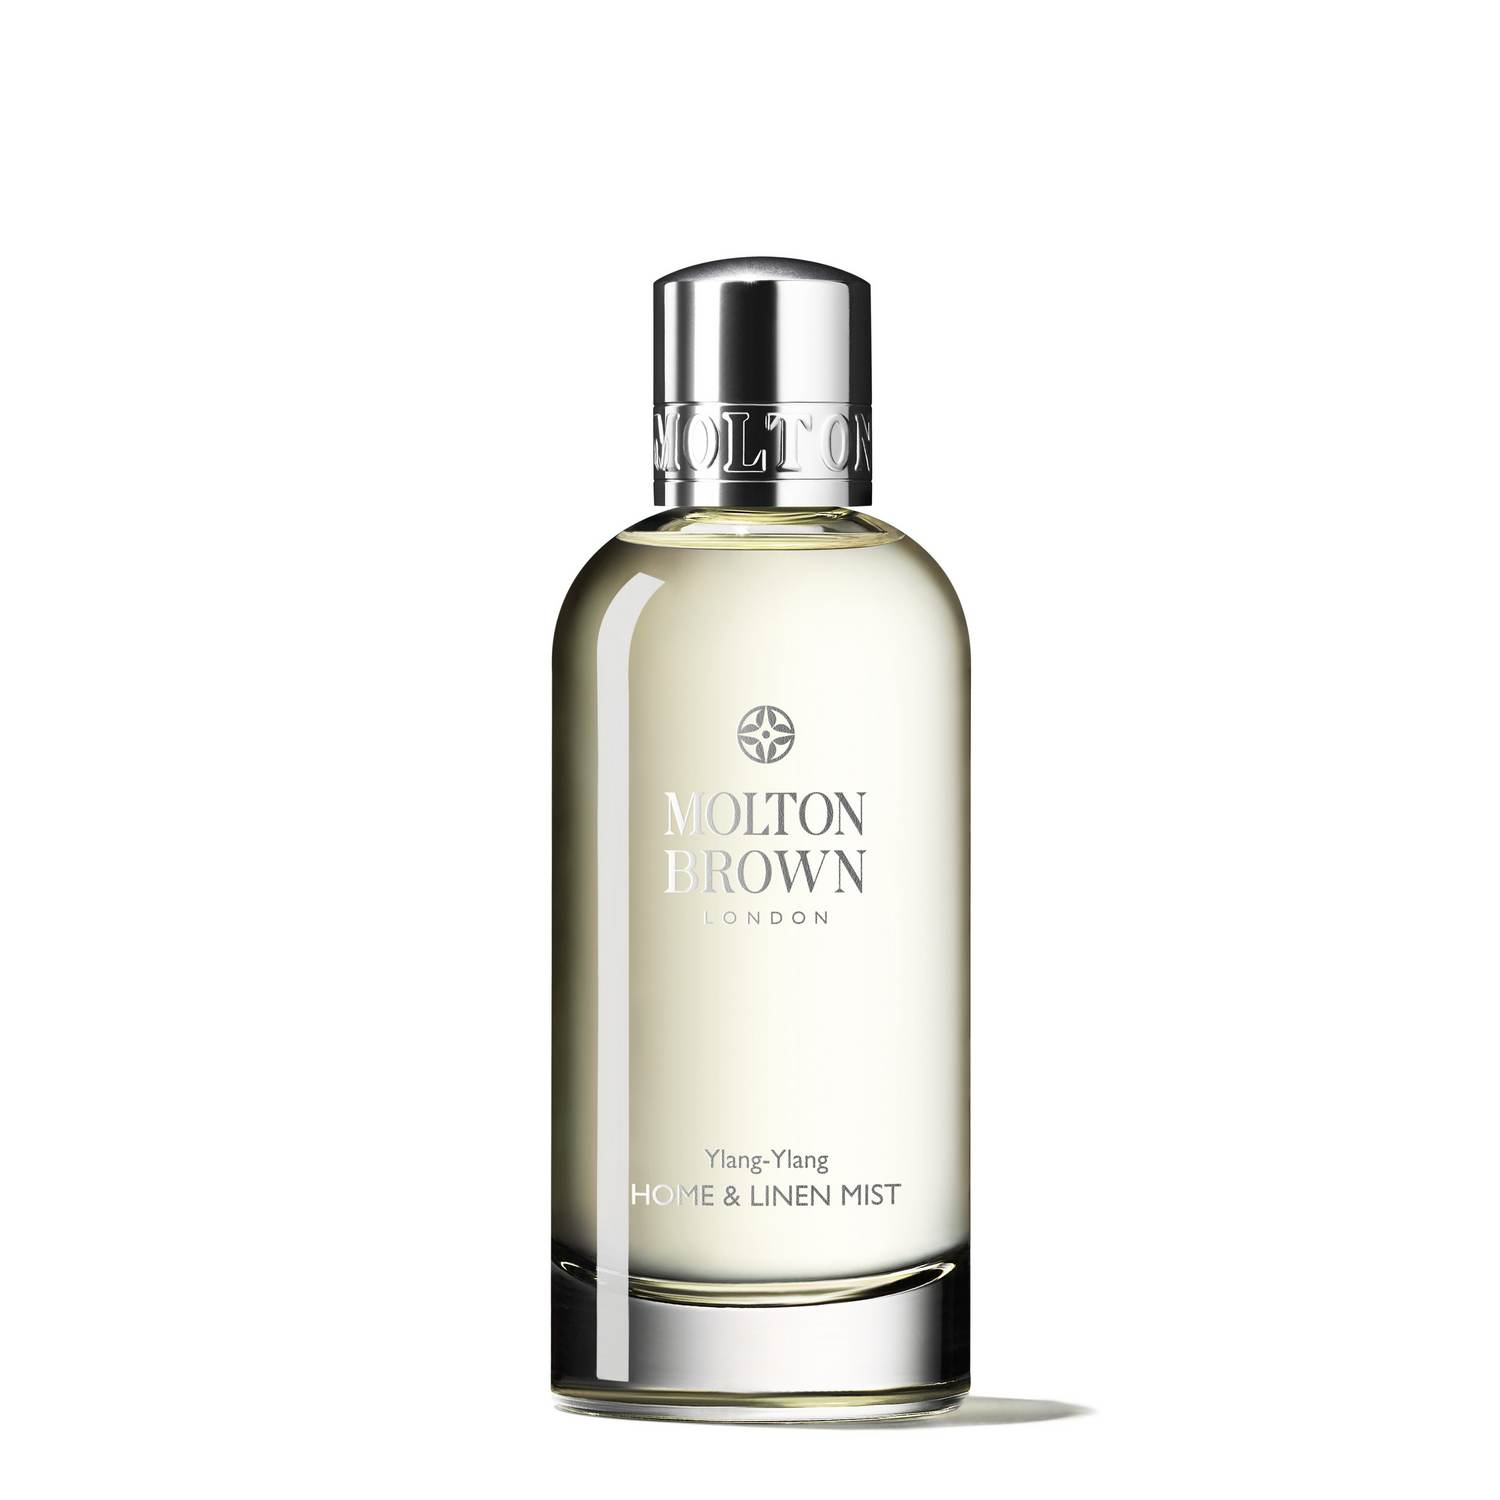 Ylang Ylang Home & Linen Mist by Molton Brown